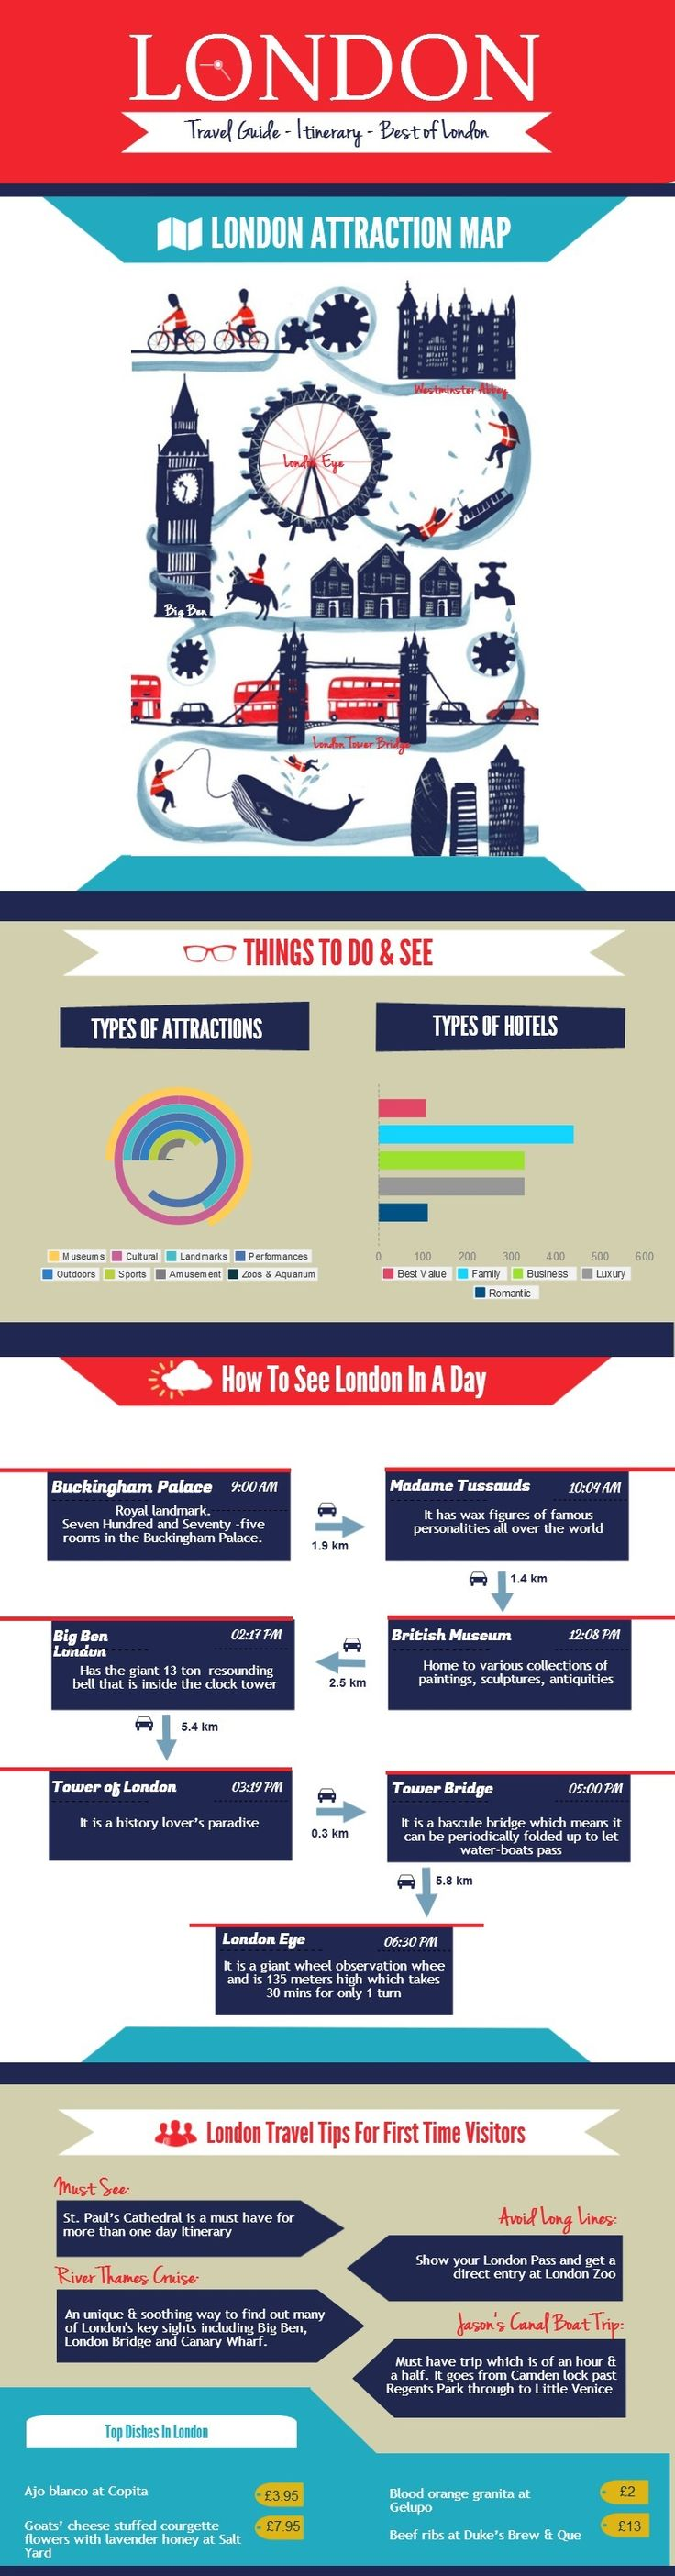 Have only day in London? No problem! This expert infographic will help you maximize your time to see London in one day.